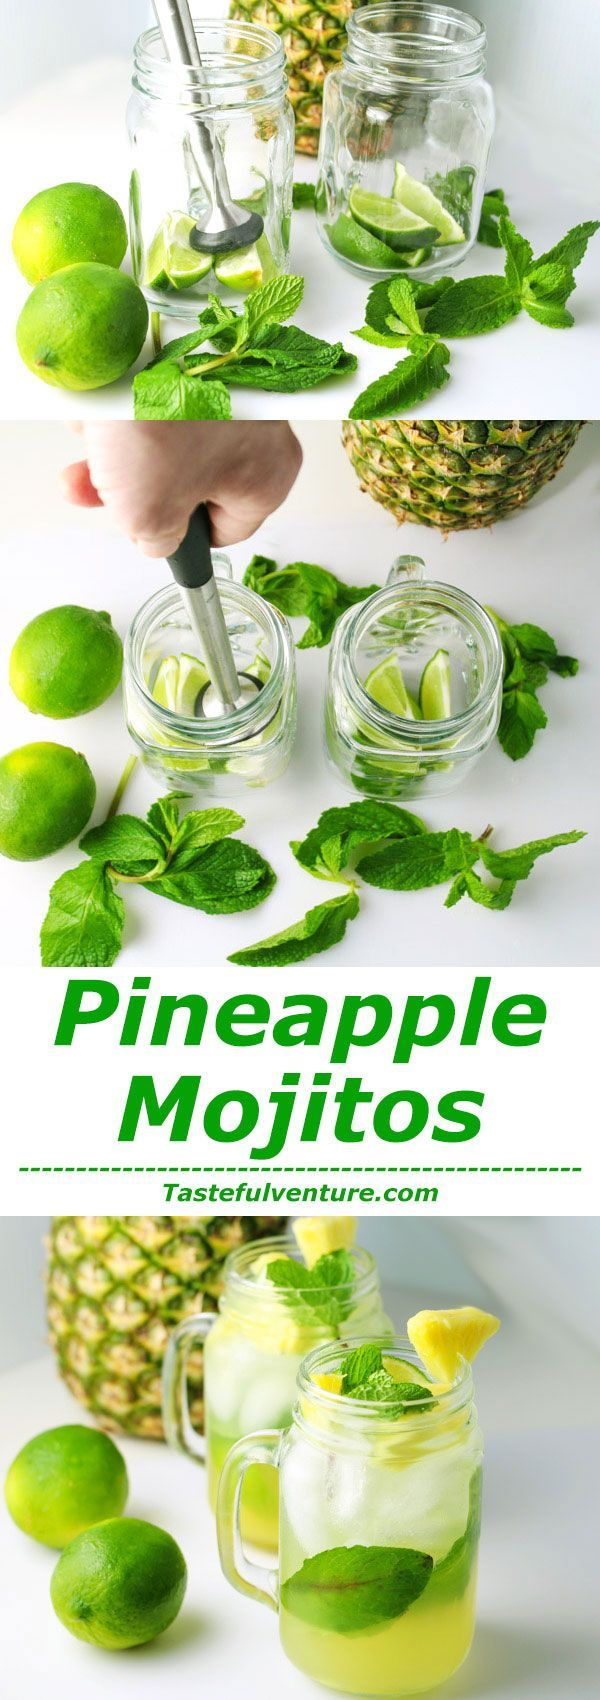 pineapple mojitos rezept drinks for adults pinterest getr nke cocktail rezepte und trinken. Black Bedroom Furniture Sets. Home Design Ideas